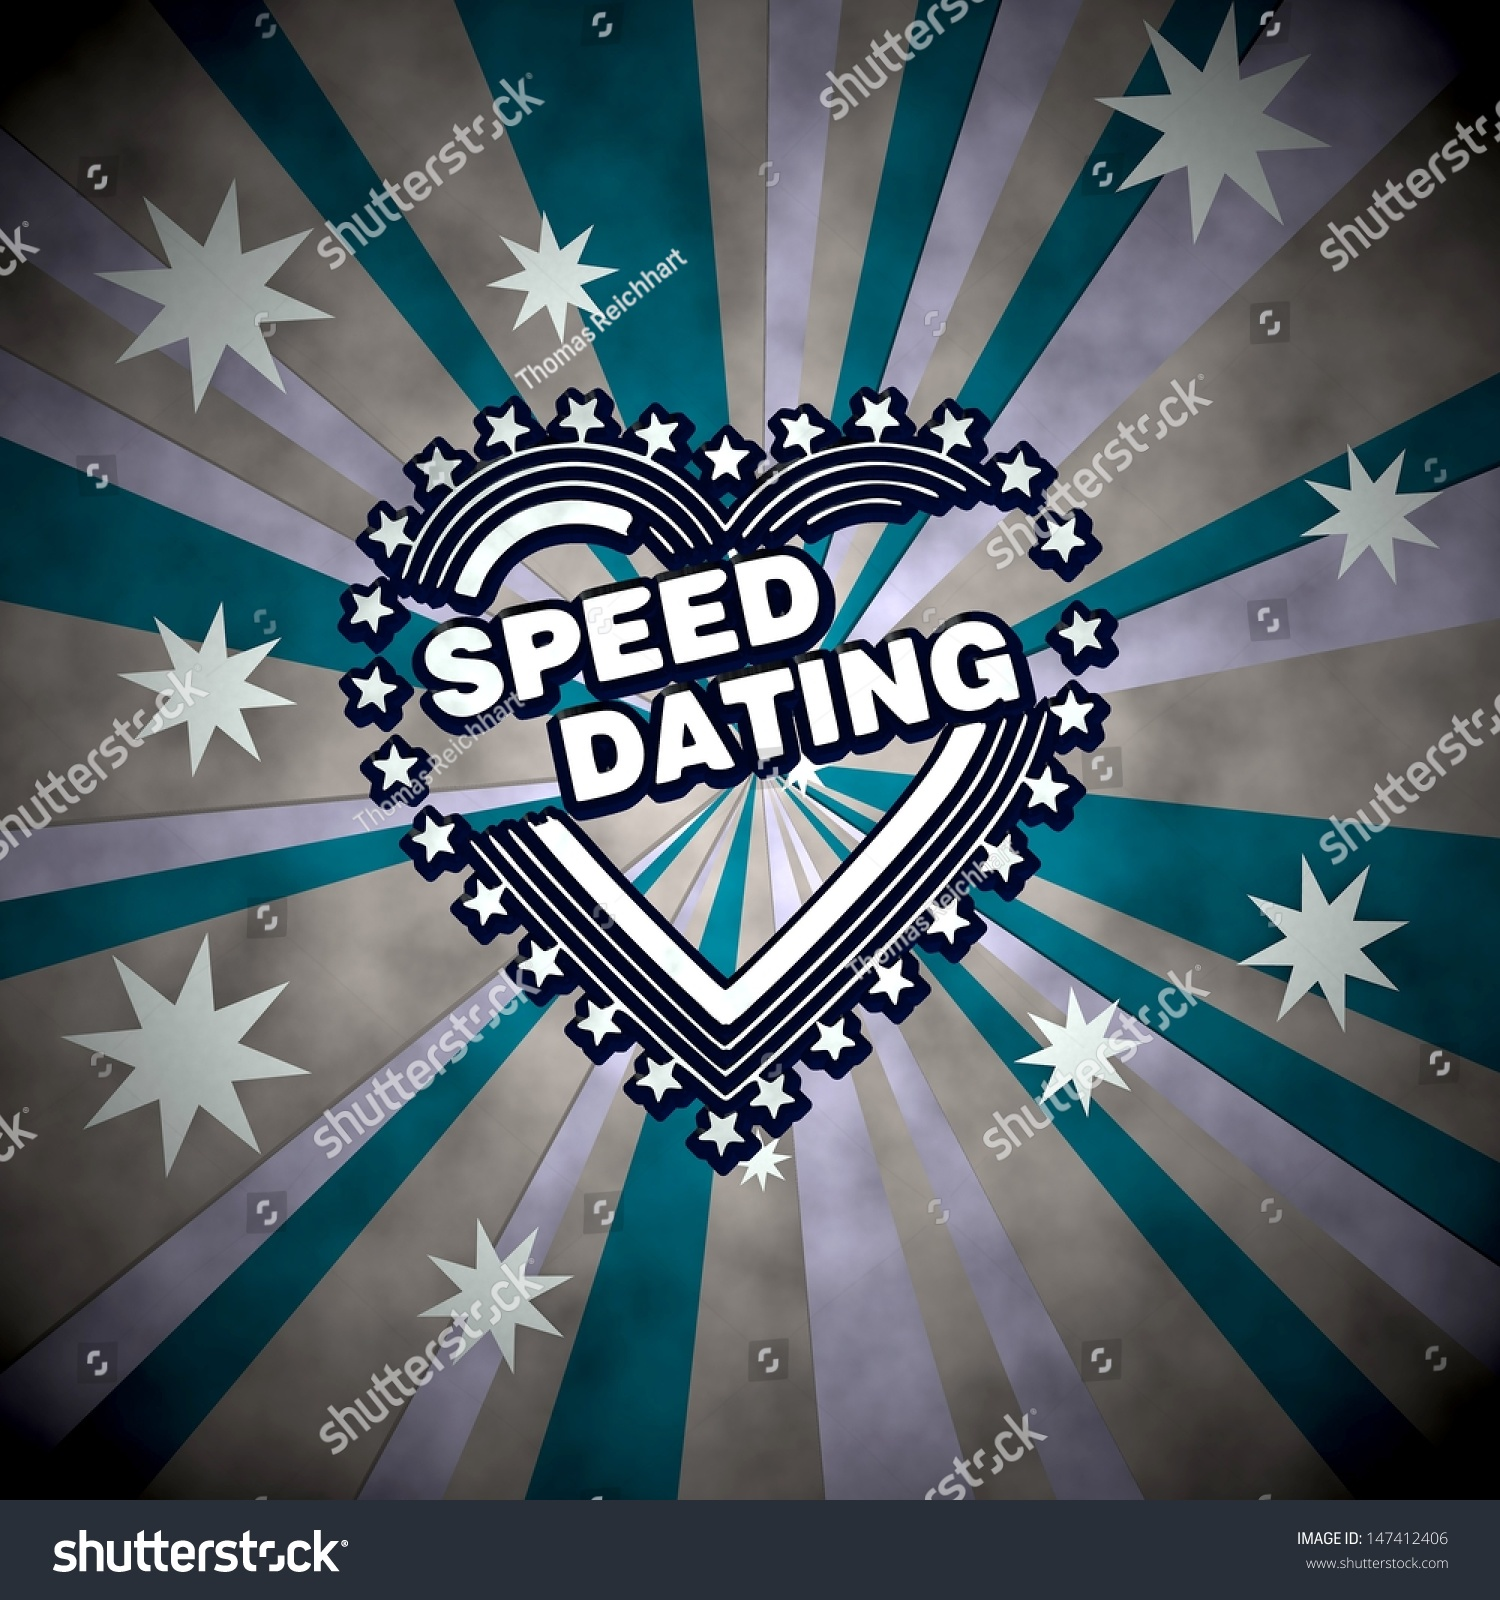 blue mesa speed dating Upcycle your old sweater into a cute pair of diy sweater mittens with our  best fitness dating websites speed dating blue mesa negative effects of online dating.